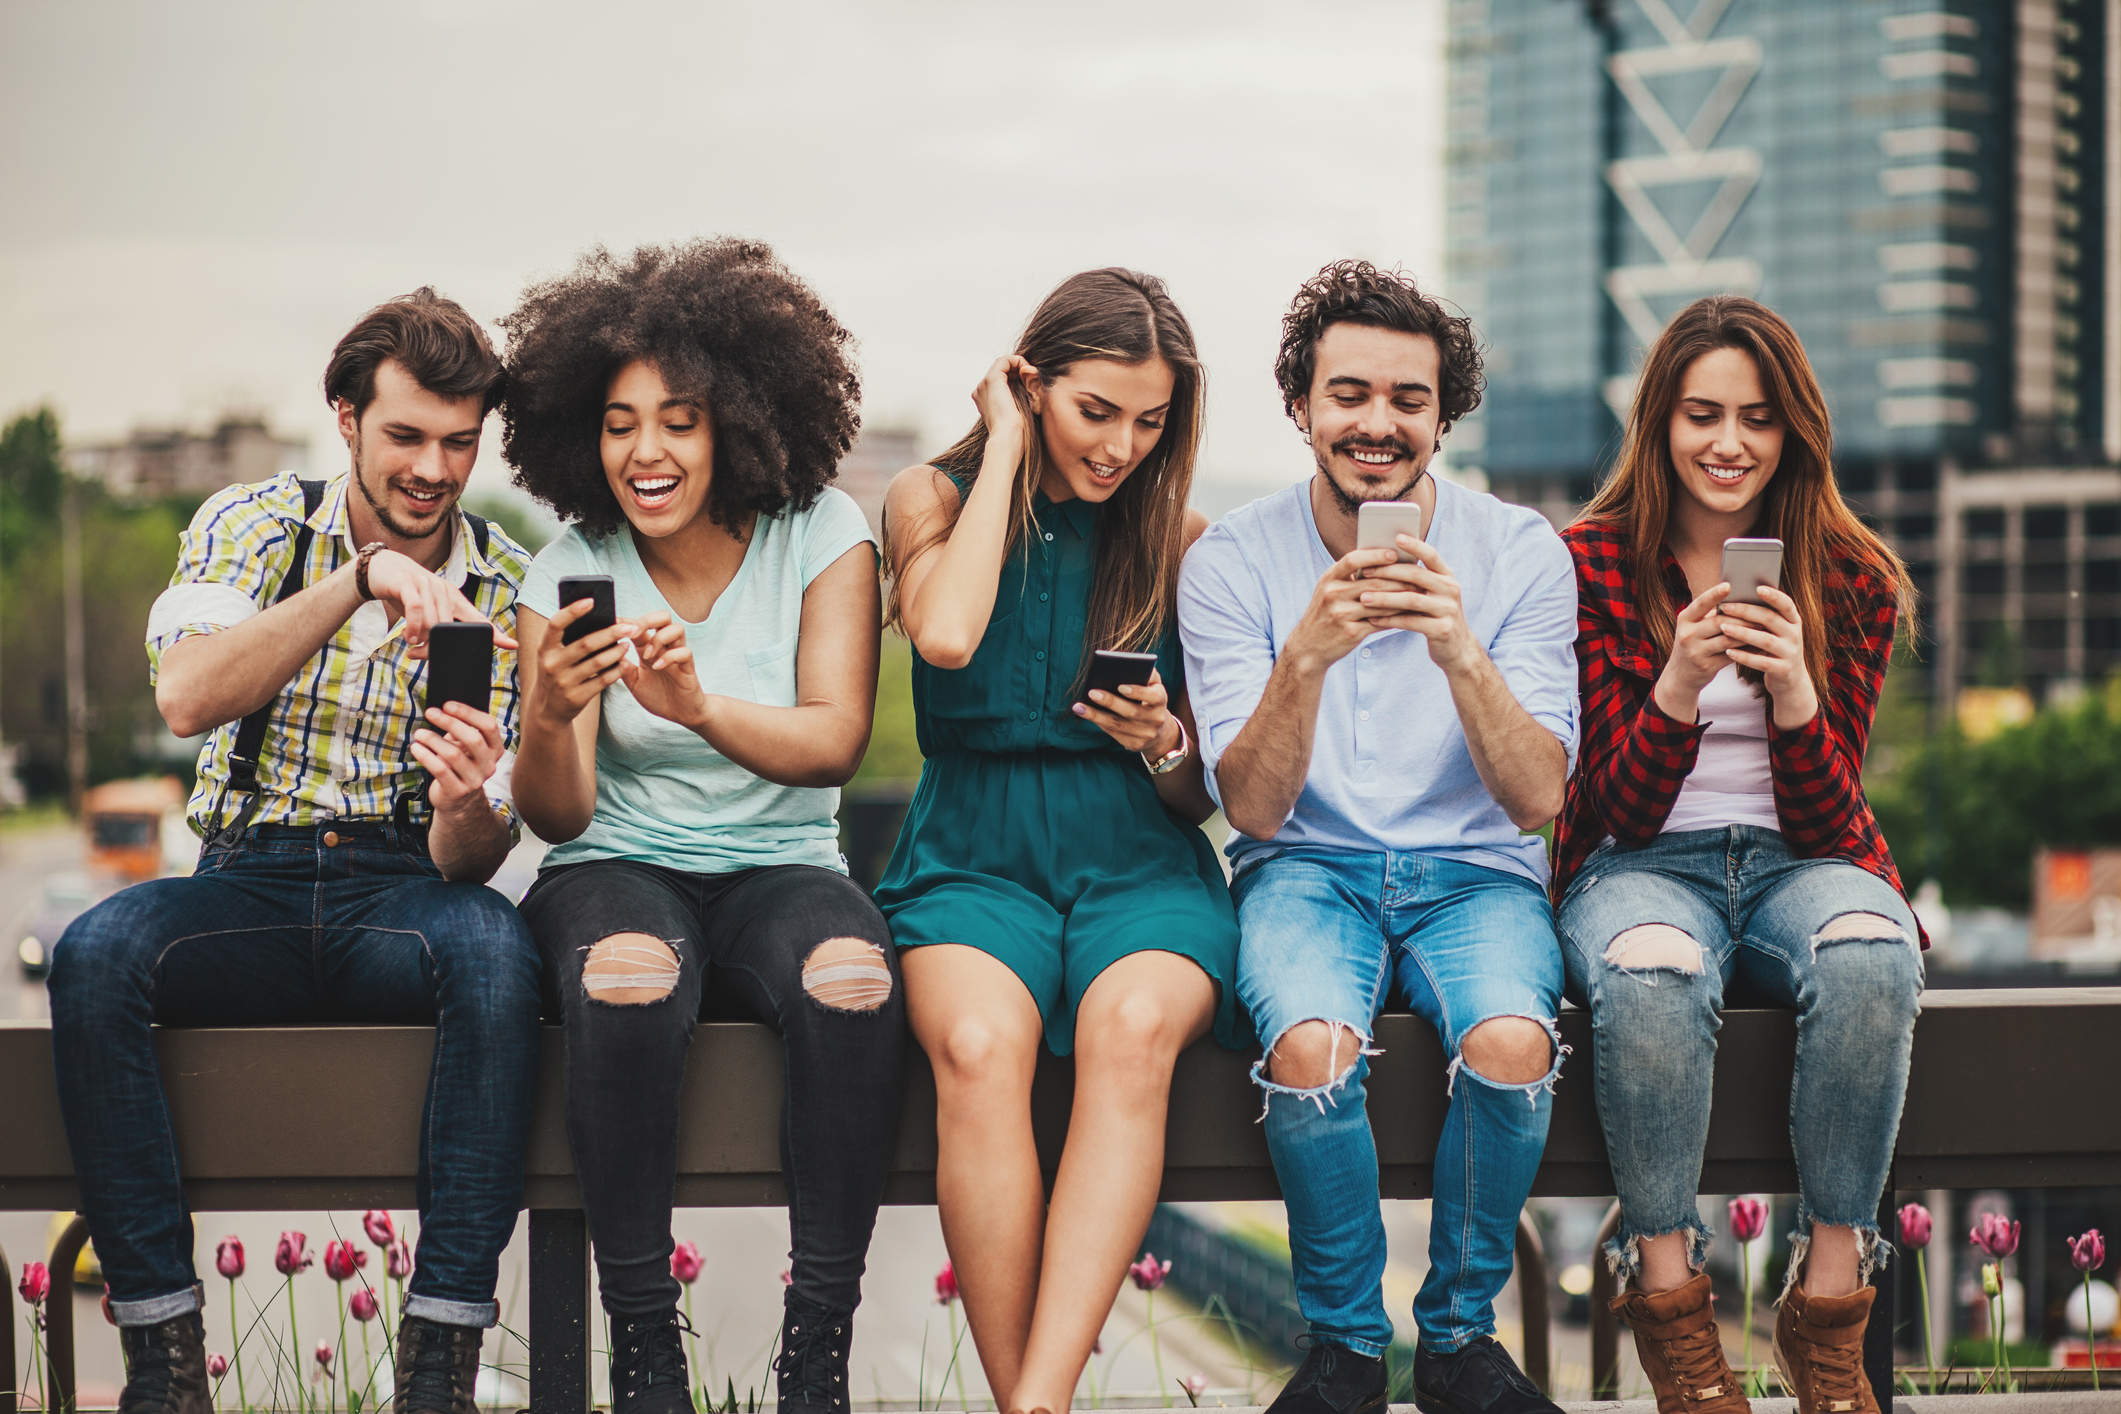 Study Shows Americans Check Their Phone 96 Times A Day.